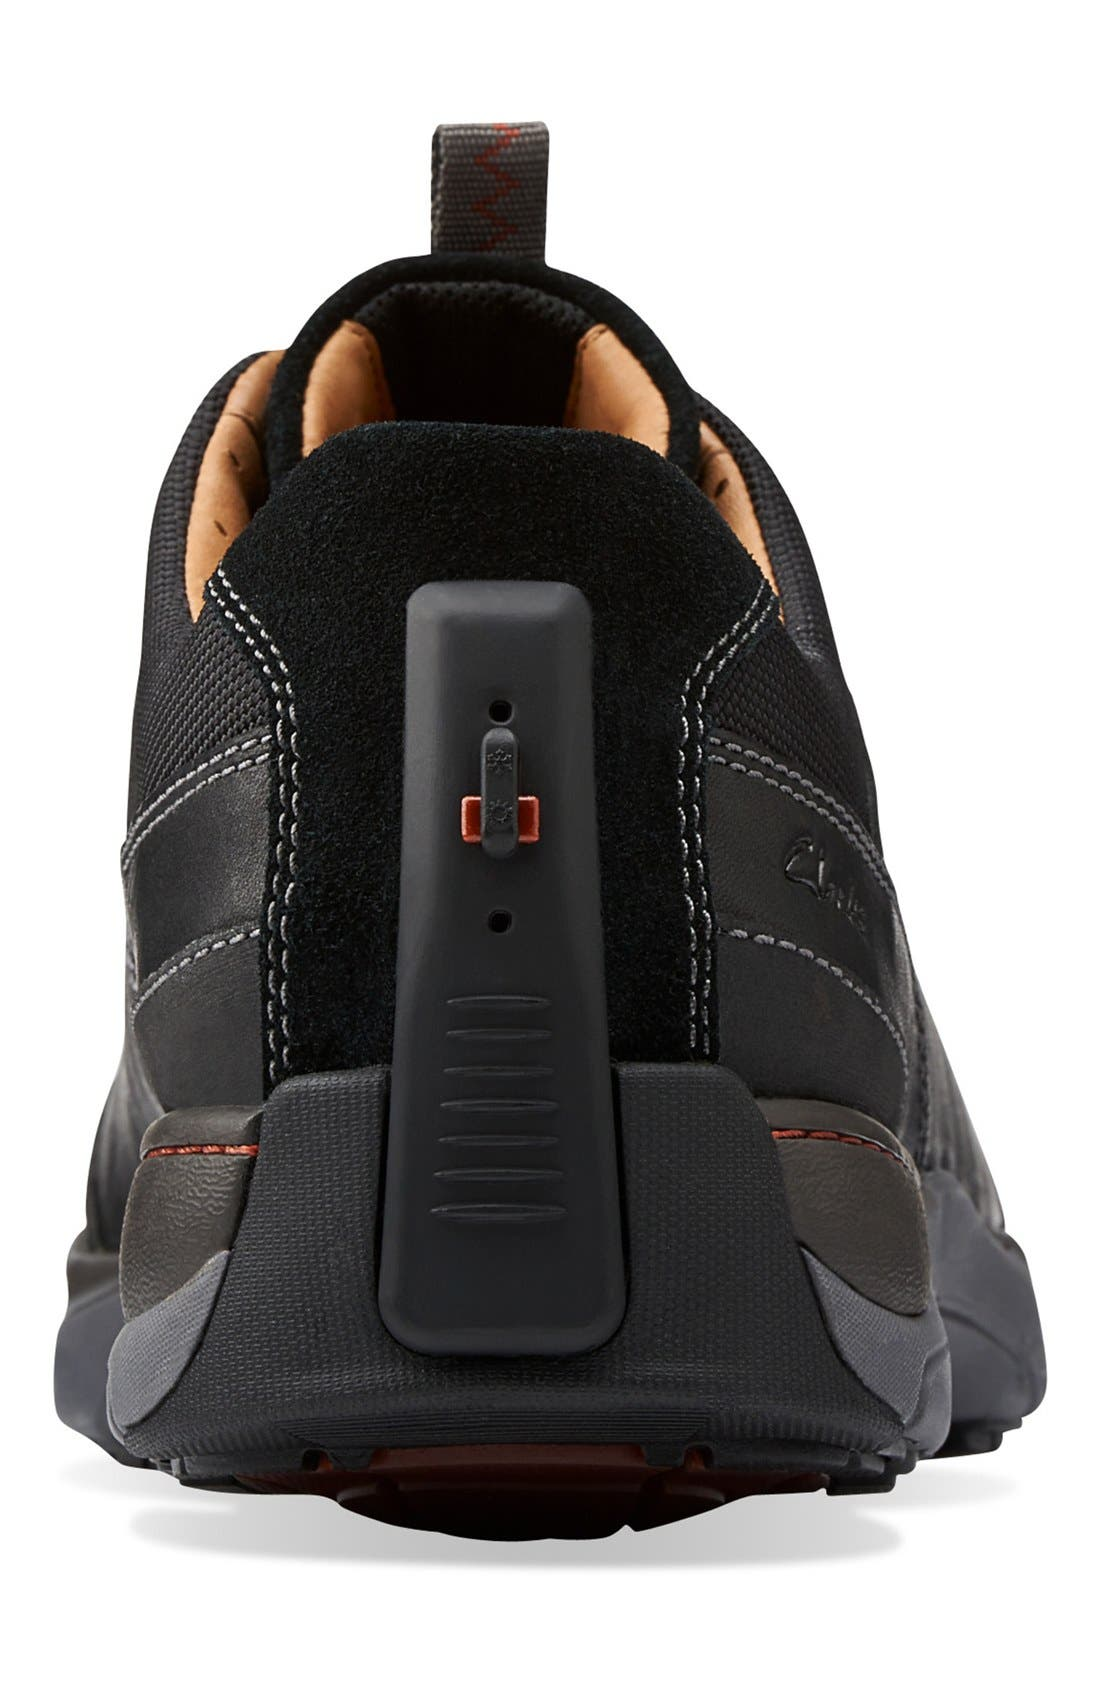 Clarks<sup>®</sup> 'Skyward Vibe' Sneaker,                             Alternate thumbnail 4, color,                             003